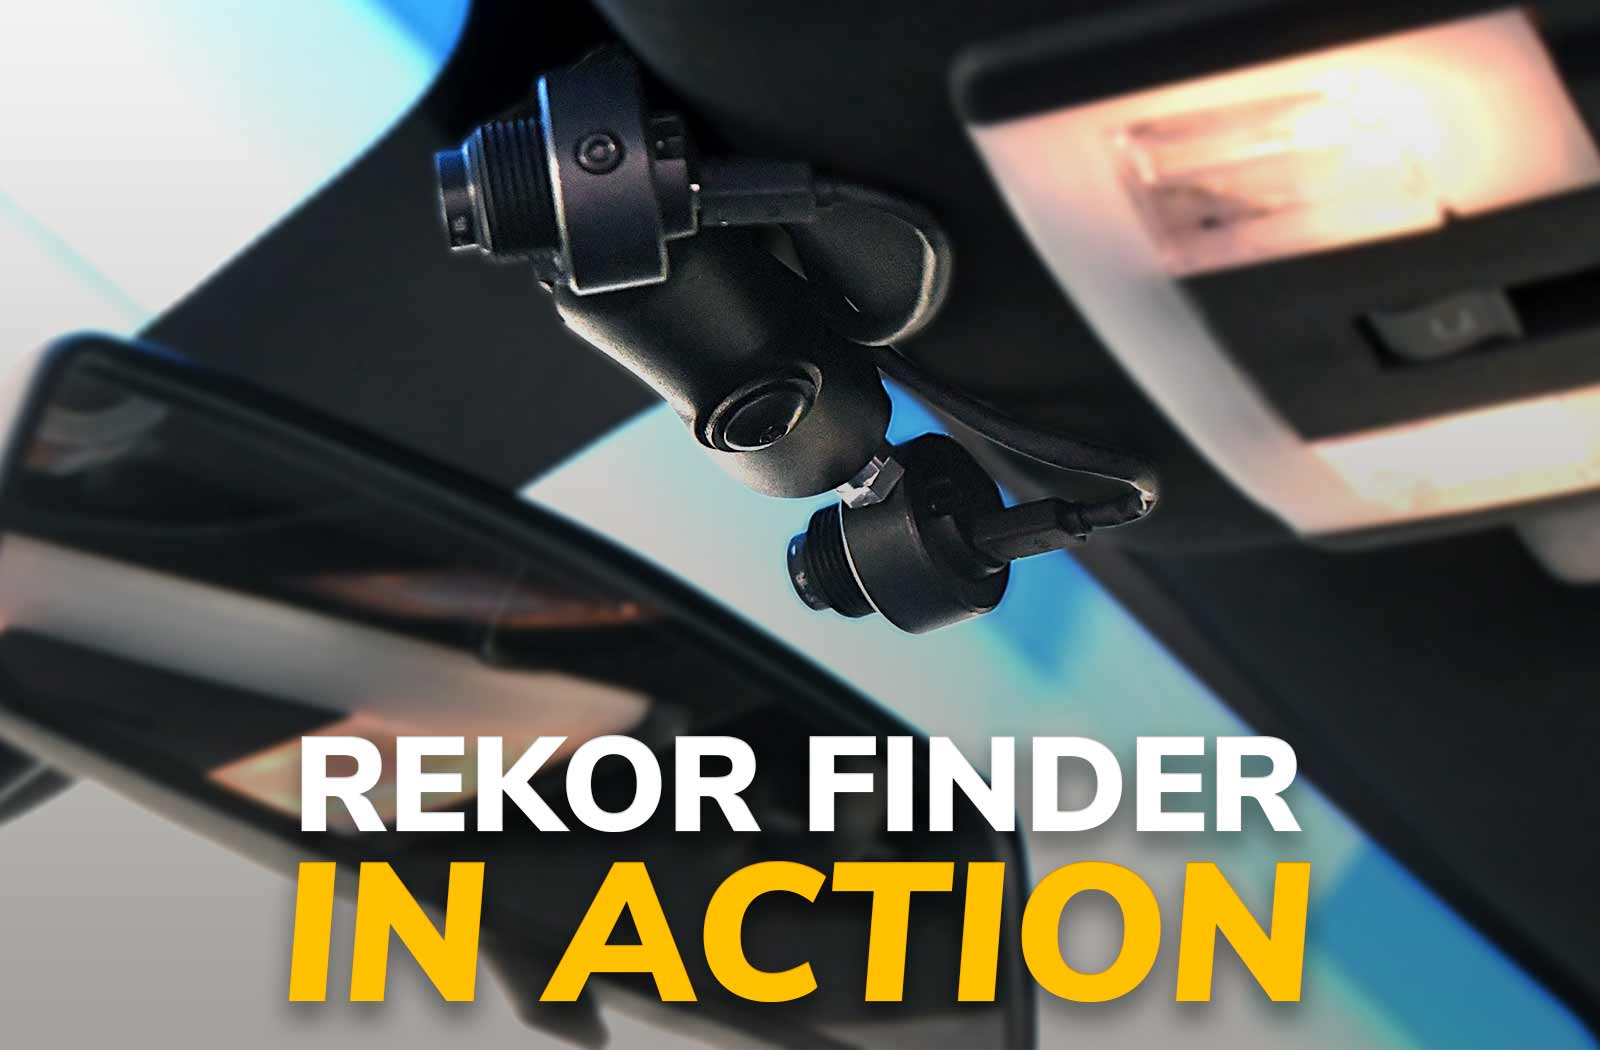 Rekor Finder in Action video thumbnail